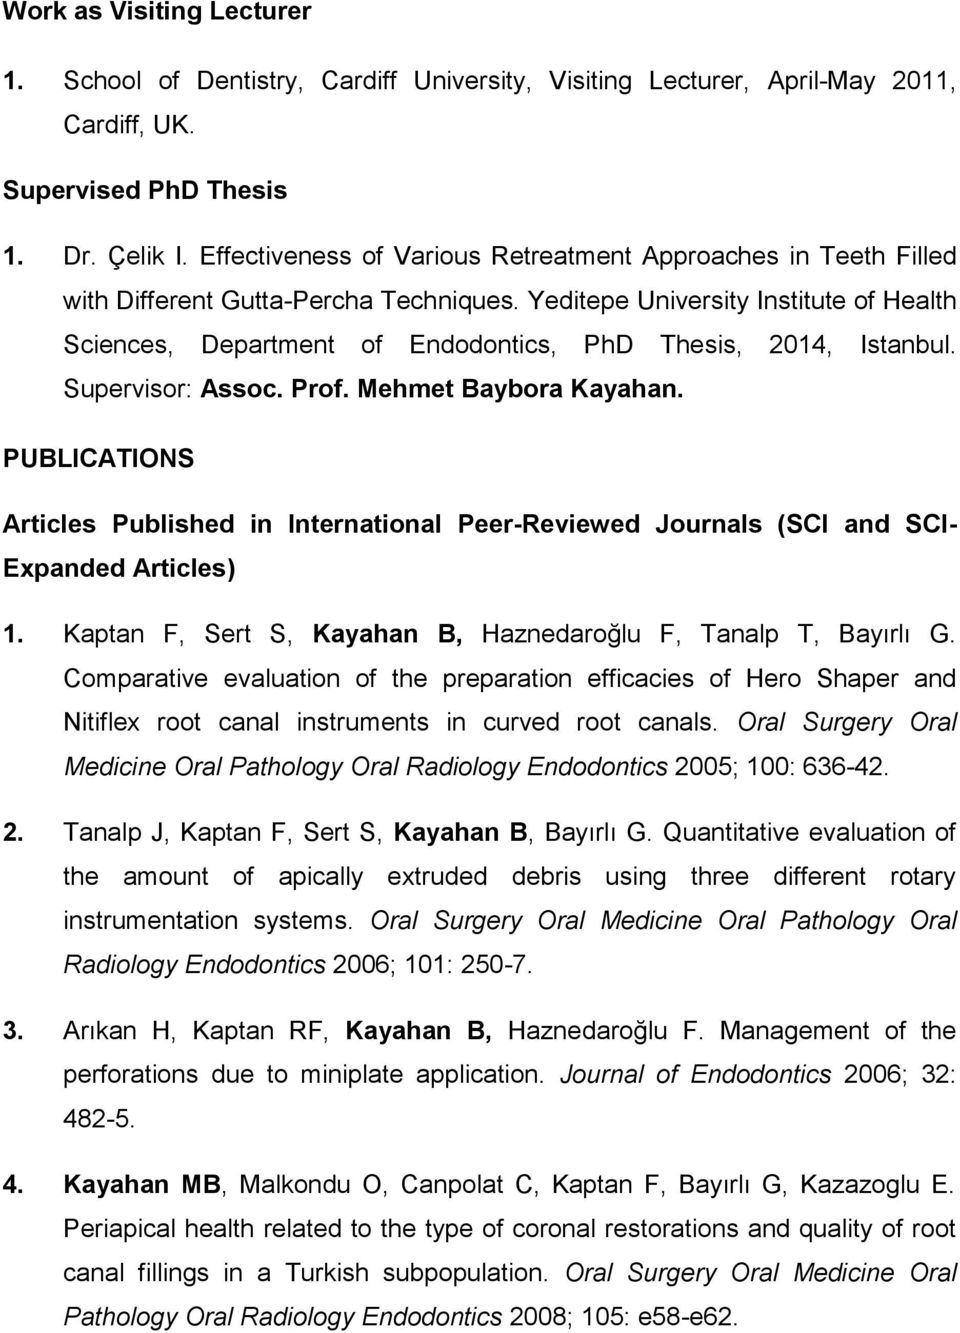 Yeditepe University Institute of Health Sciences, Department of Endodontics, PhD Thesis, 2014, Istanbul. Supervisor: Assoc. Prof. Mehmet Baybora Kayahan.